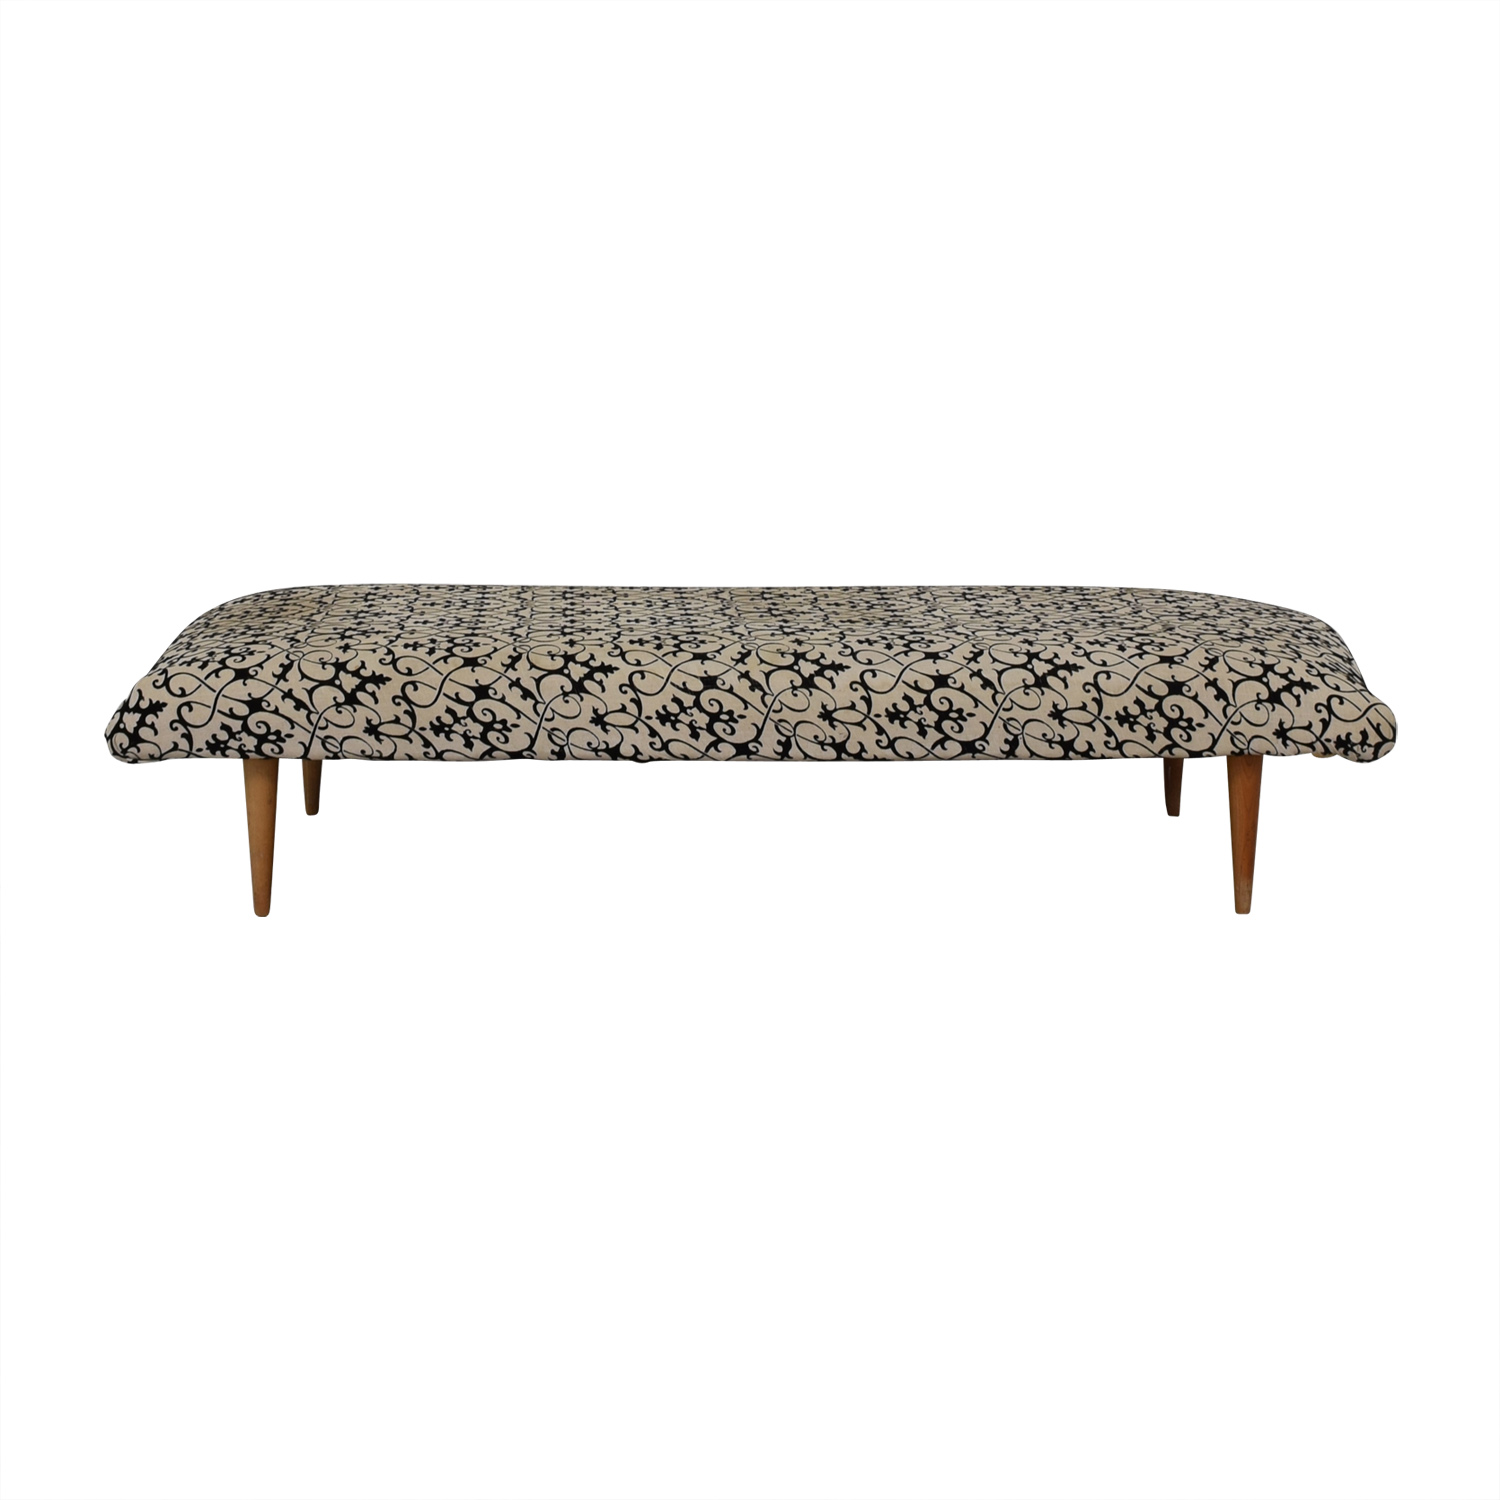 Vintage White and Black Upholstered Bench nyc